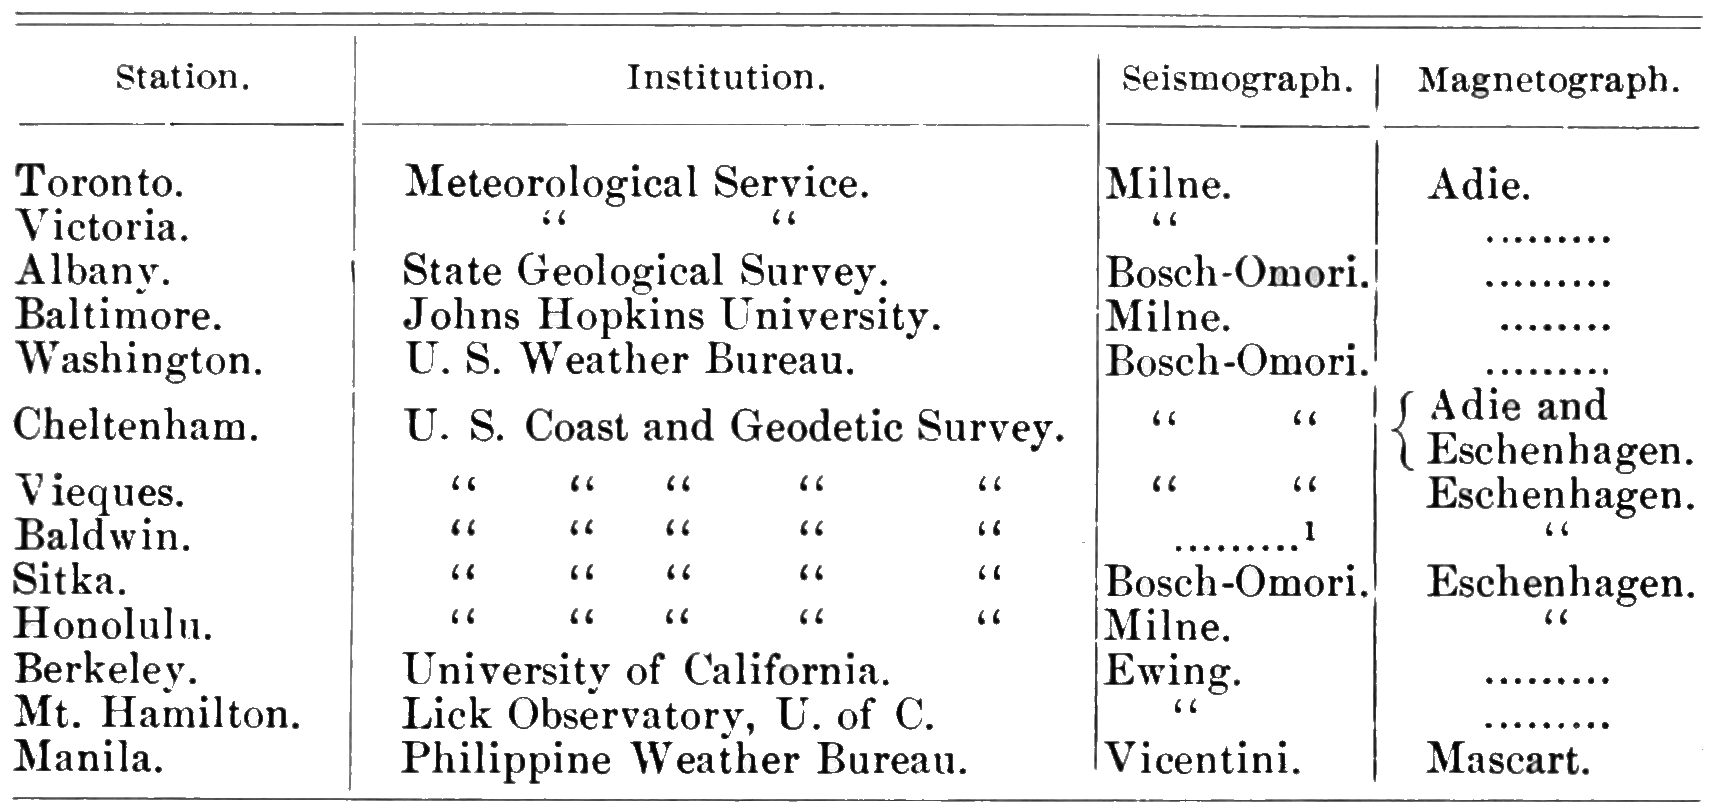 PSM V69 D121 List of us and canadian seismographic stations.png